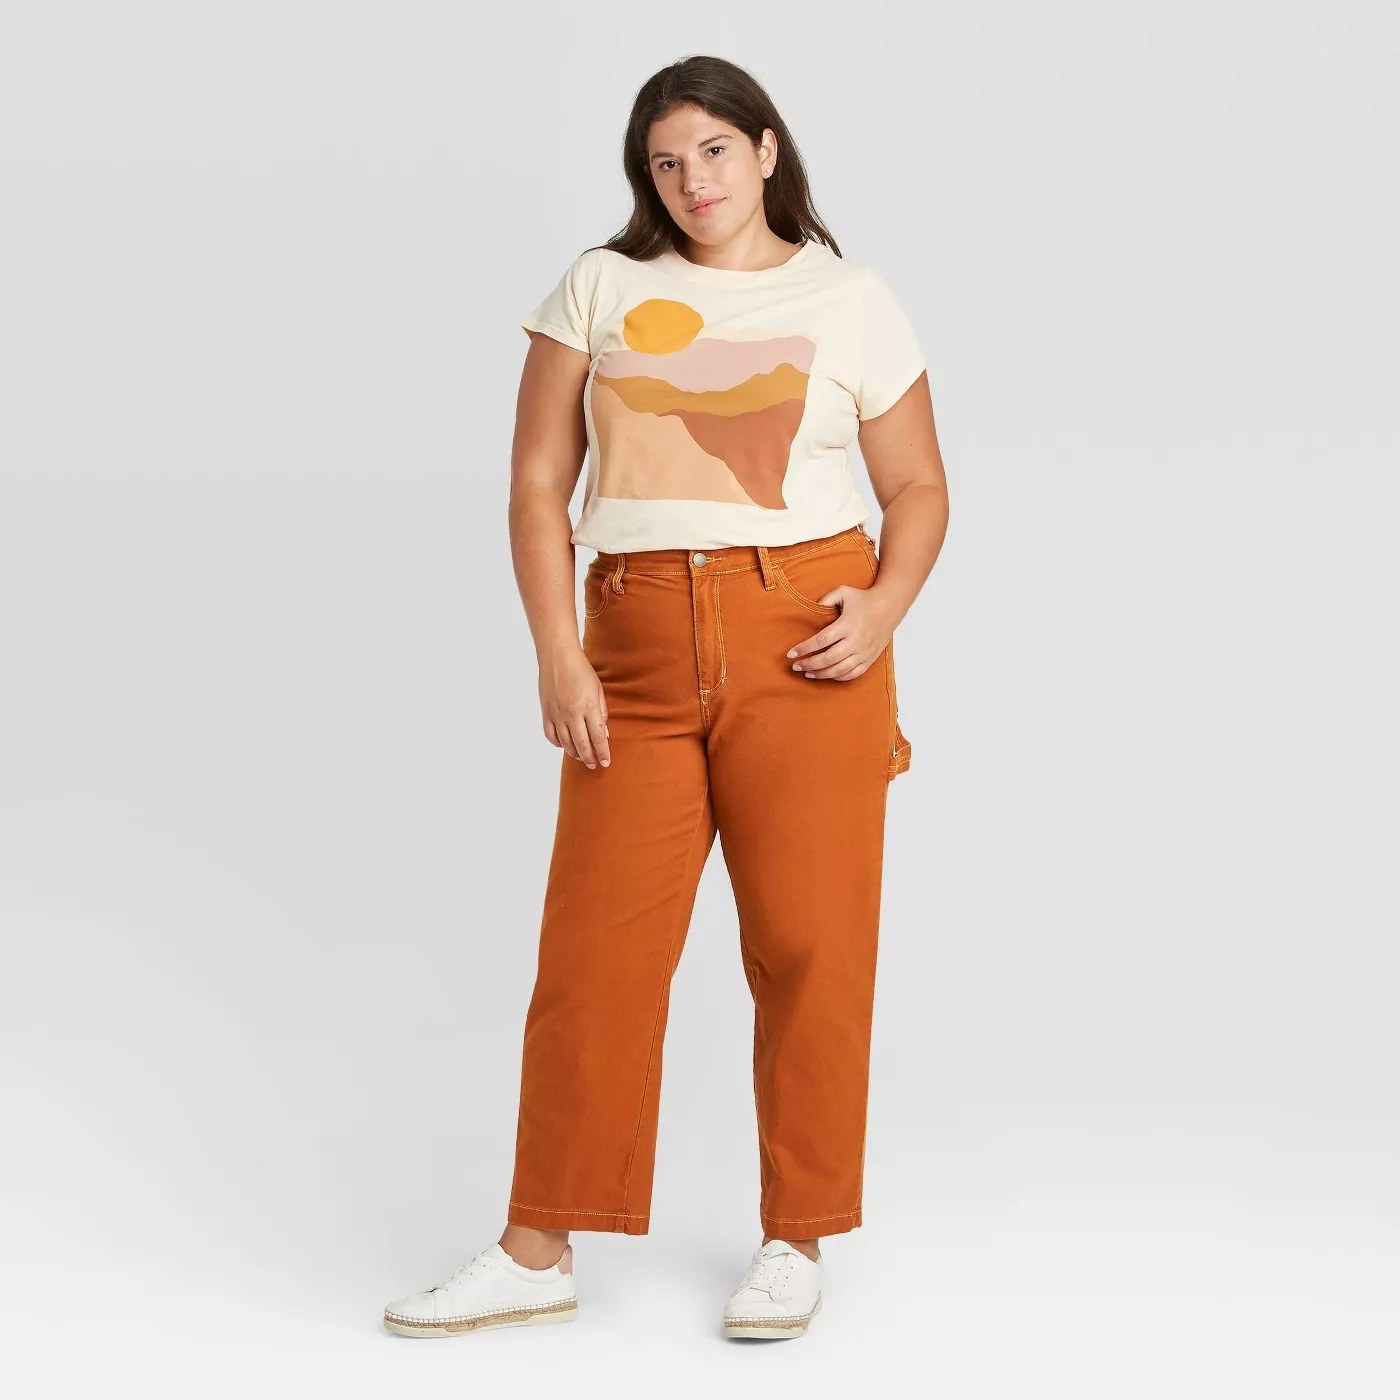 model wears vintage style orange pants with white sunset t shirt